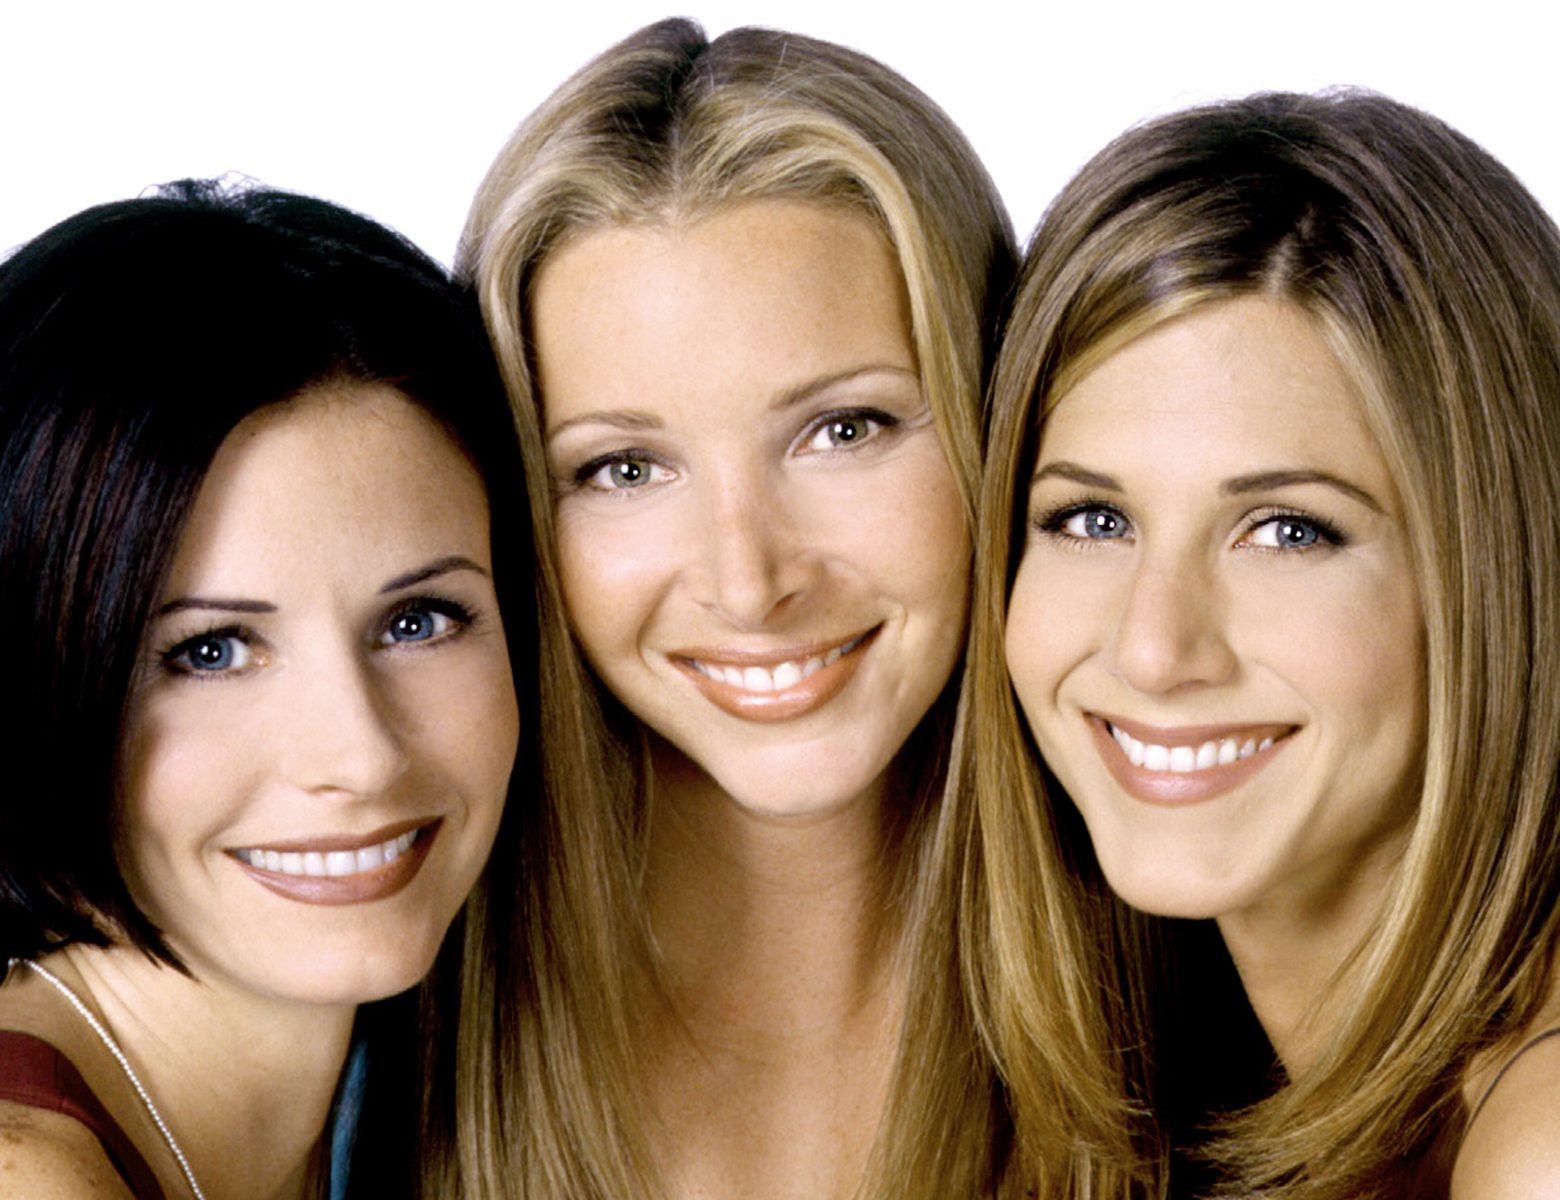 jennifer aniston friends today main 181207 e53210a0c41d017fd0fbb0d52ef3aafe e1605259374874 21 90s TV Actresses We All Had A Crush On When We Were Younger